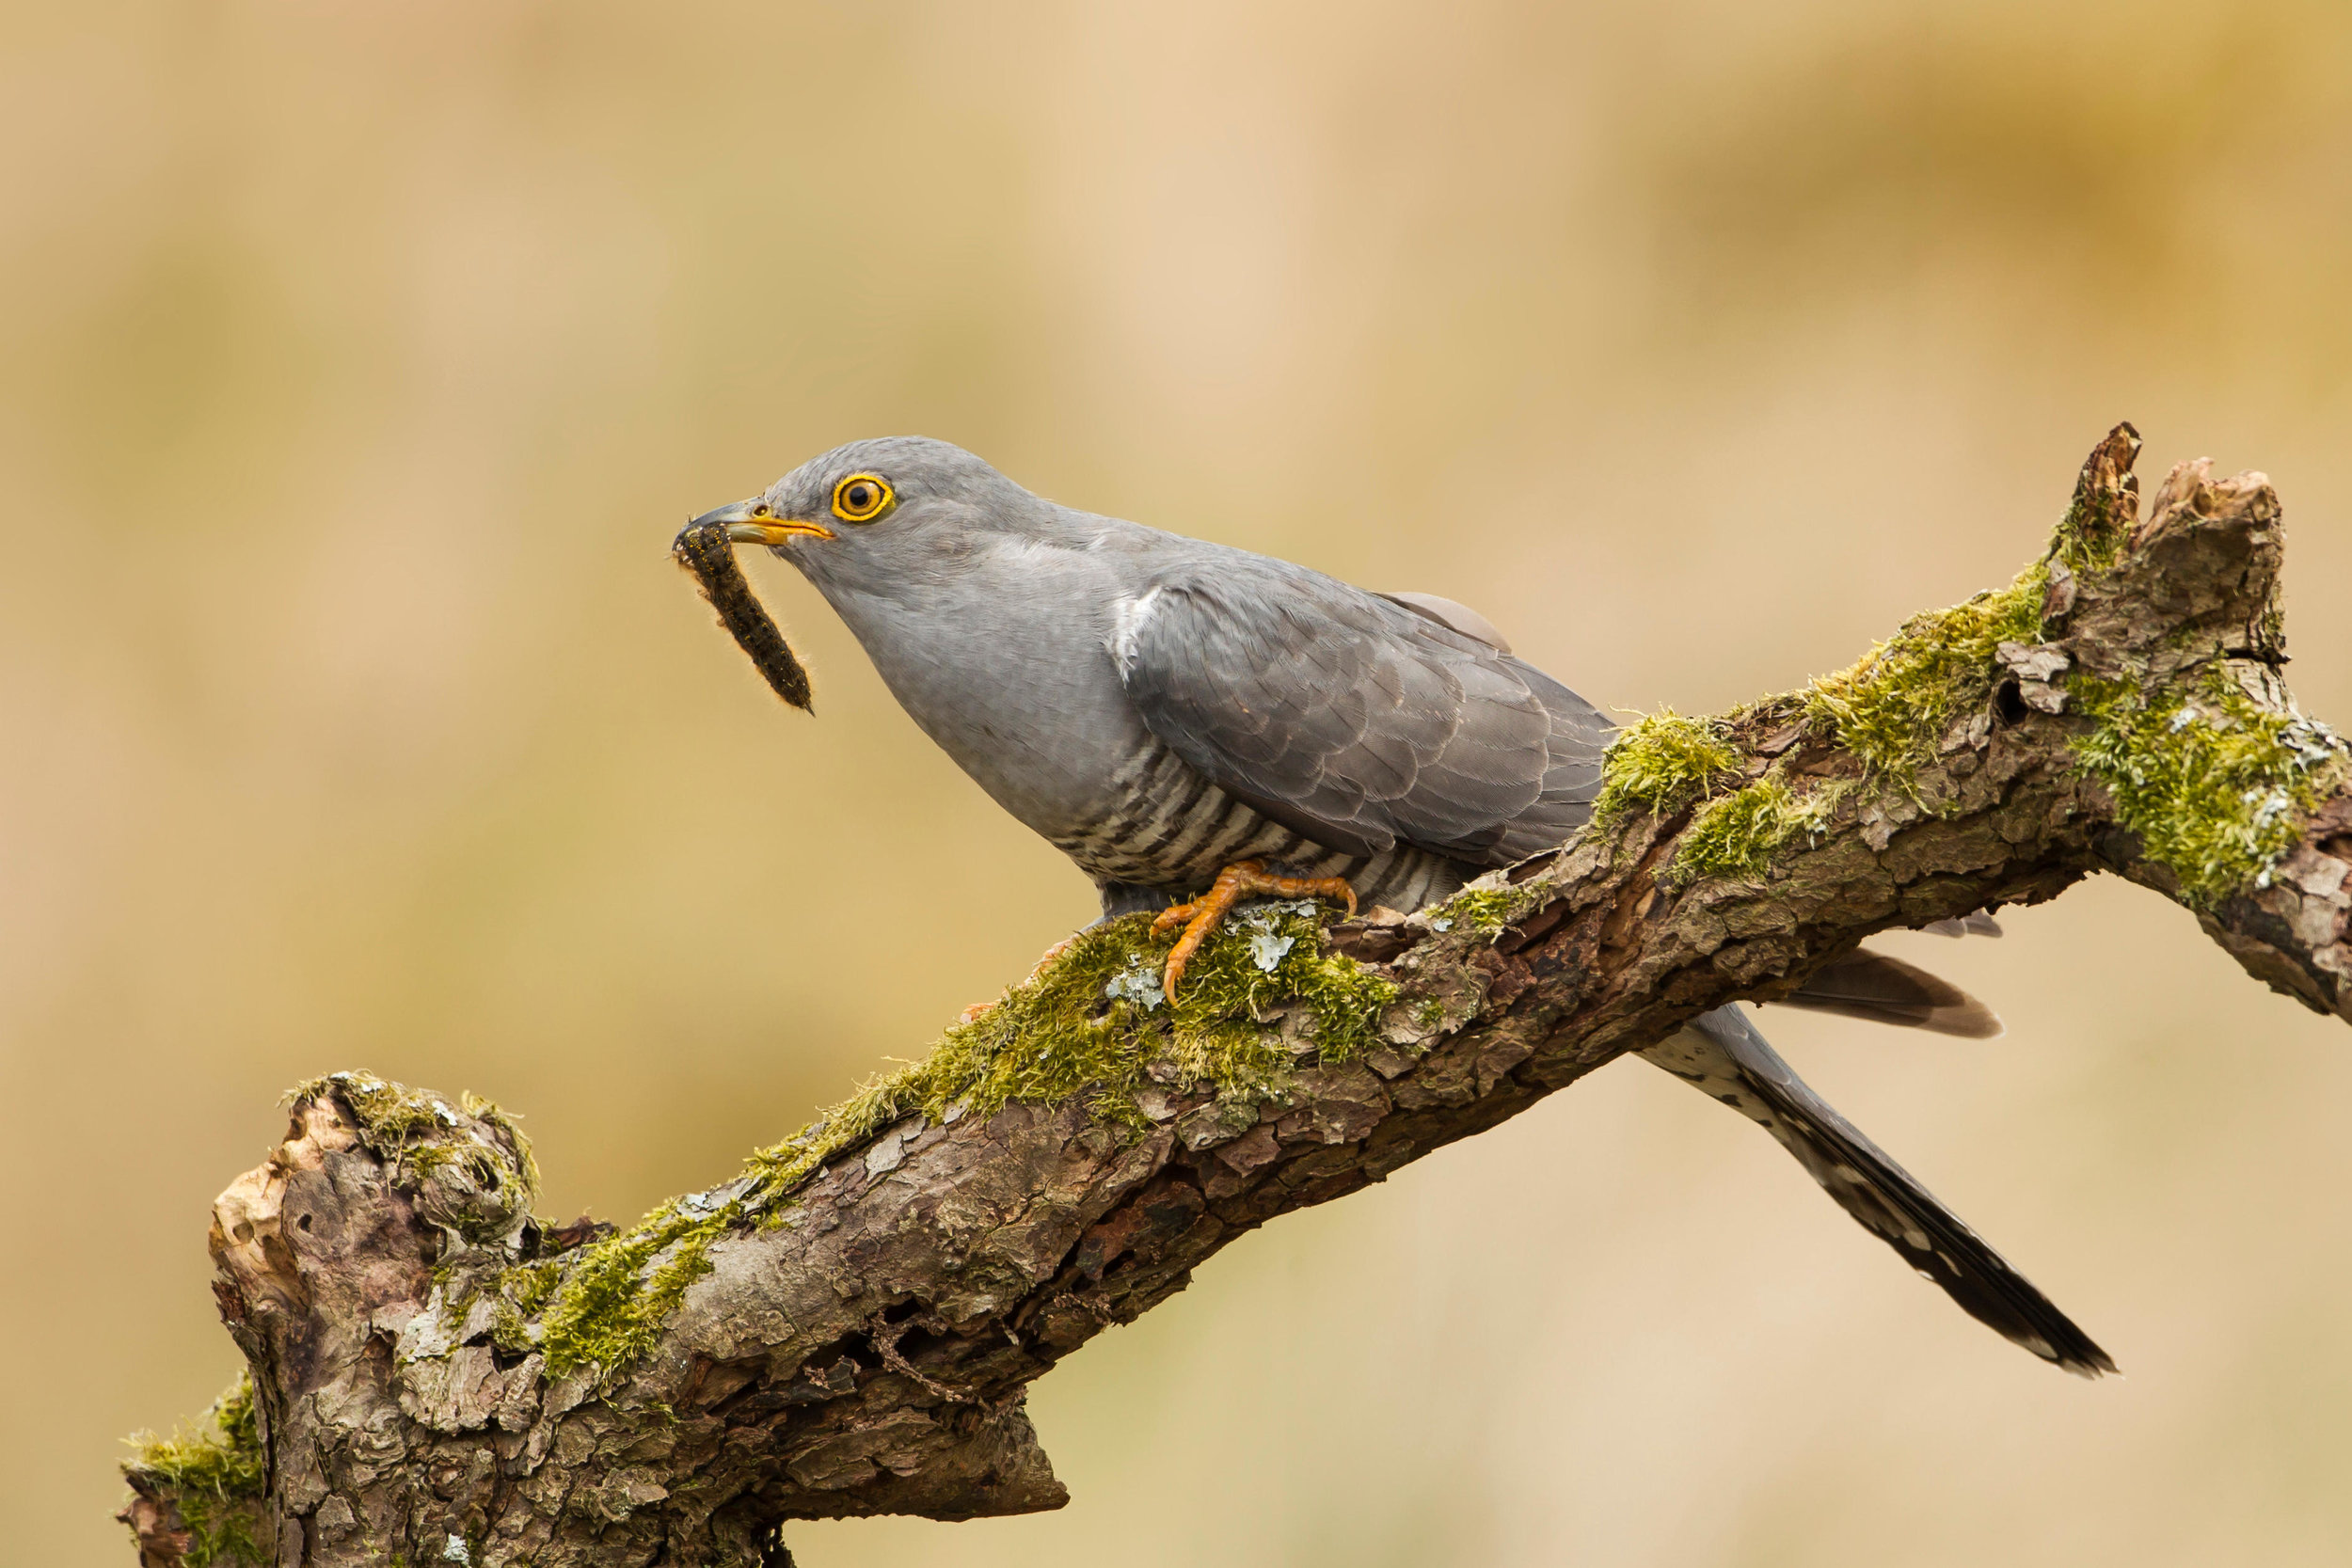 Adult Cuckoo with caterpillar